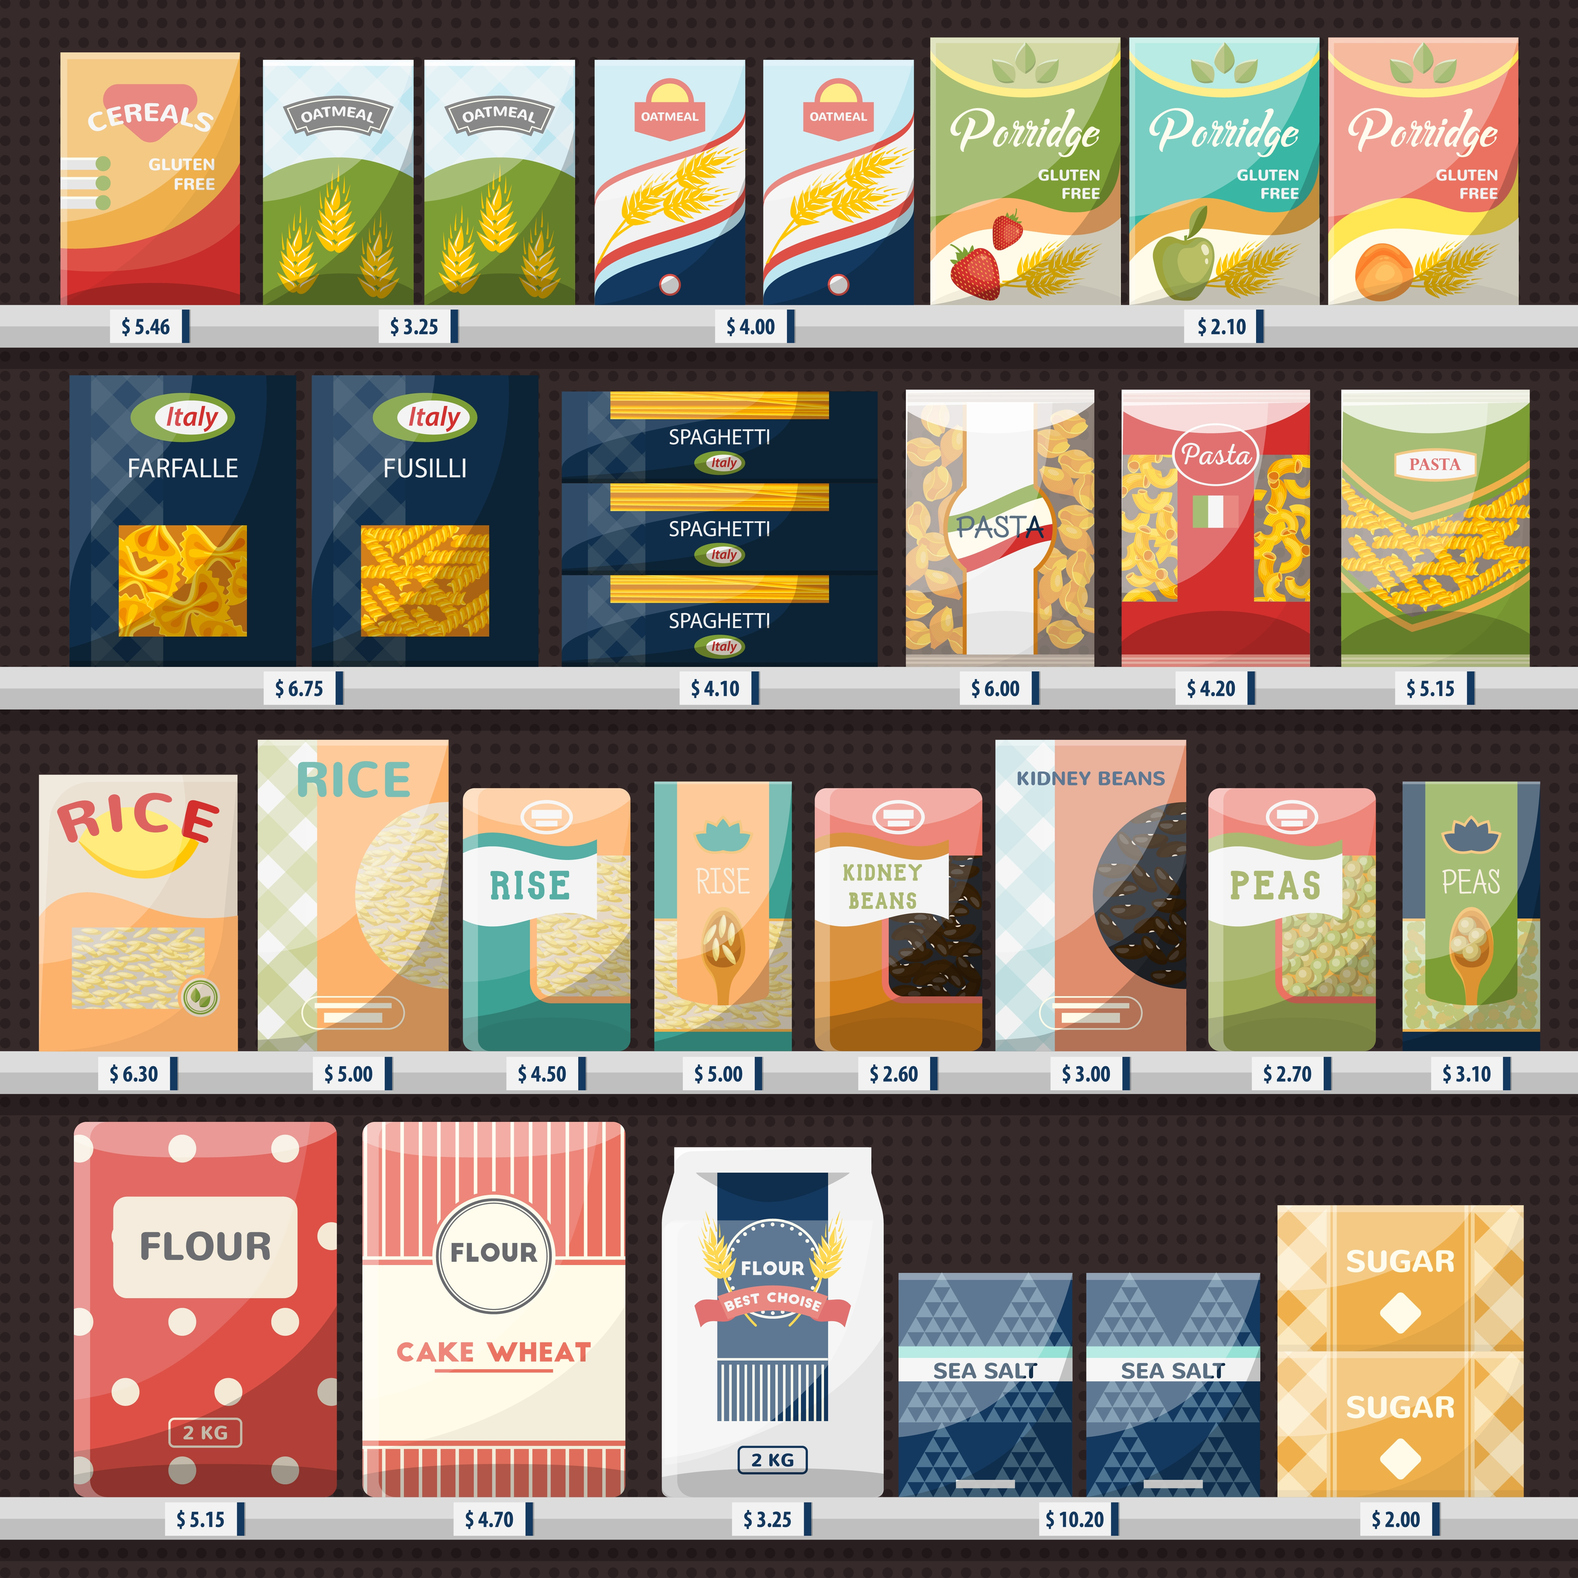 The principles of good product packaging design